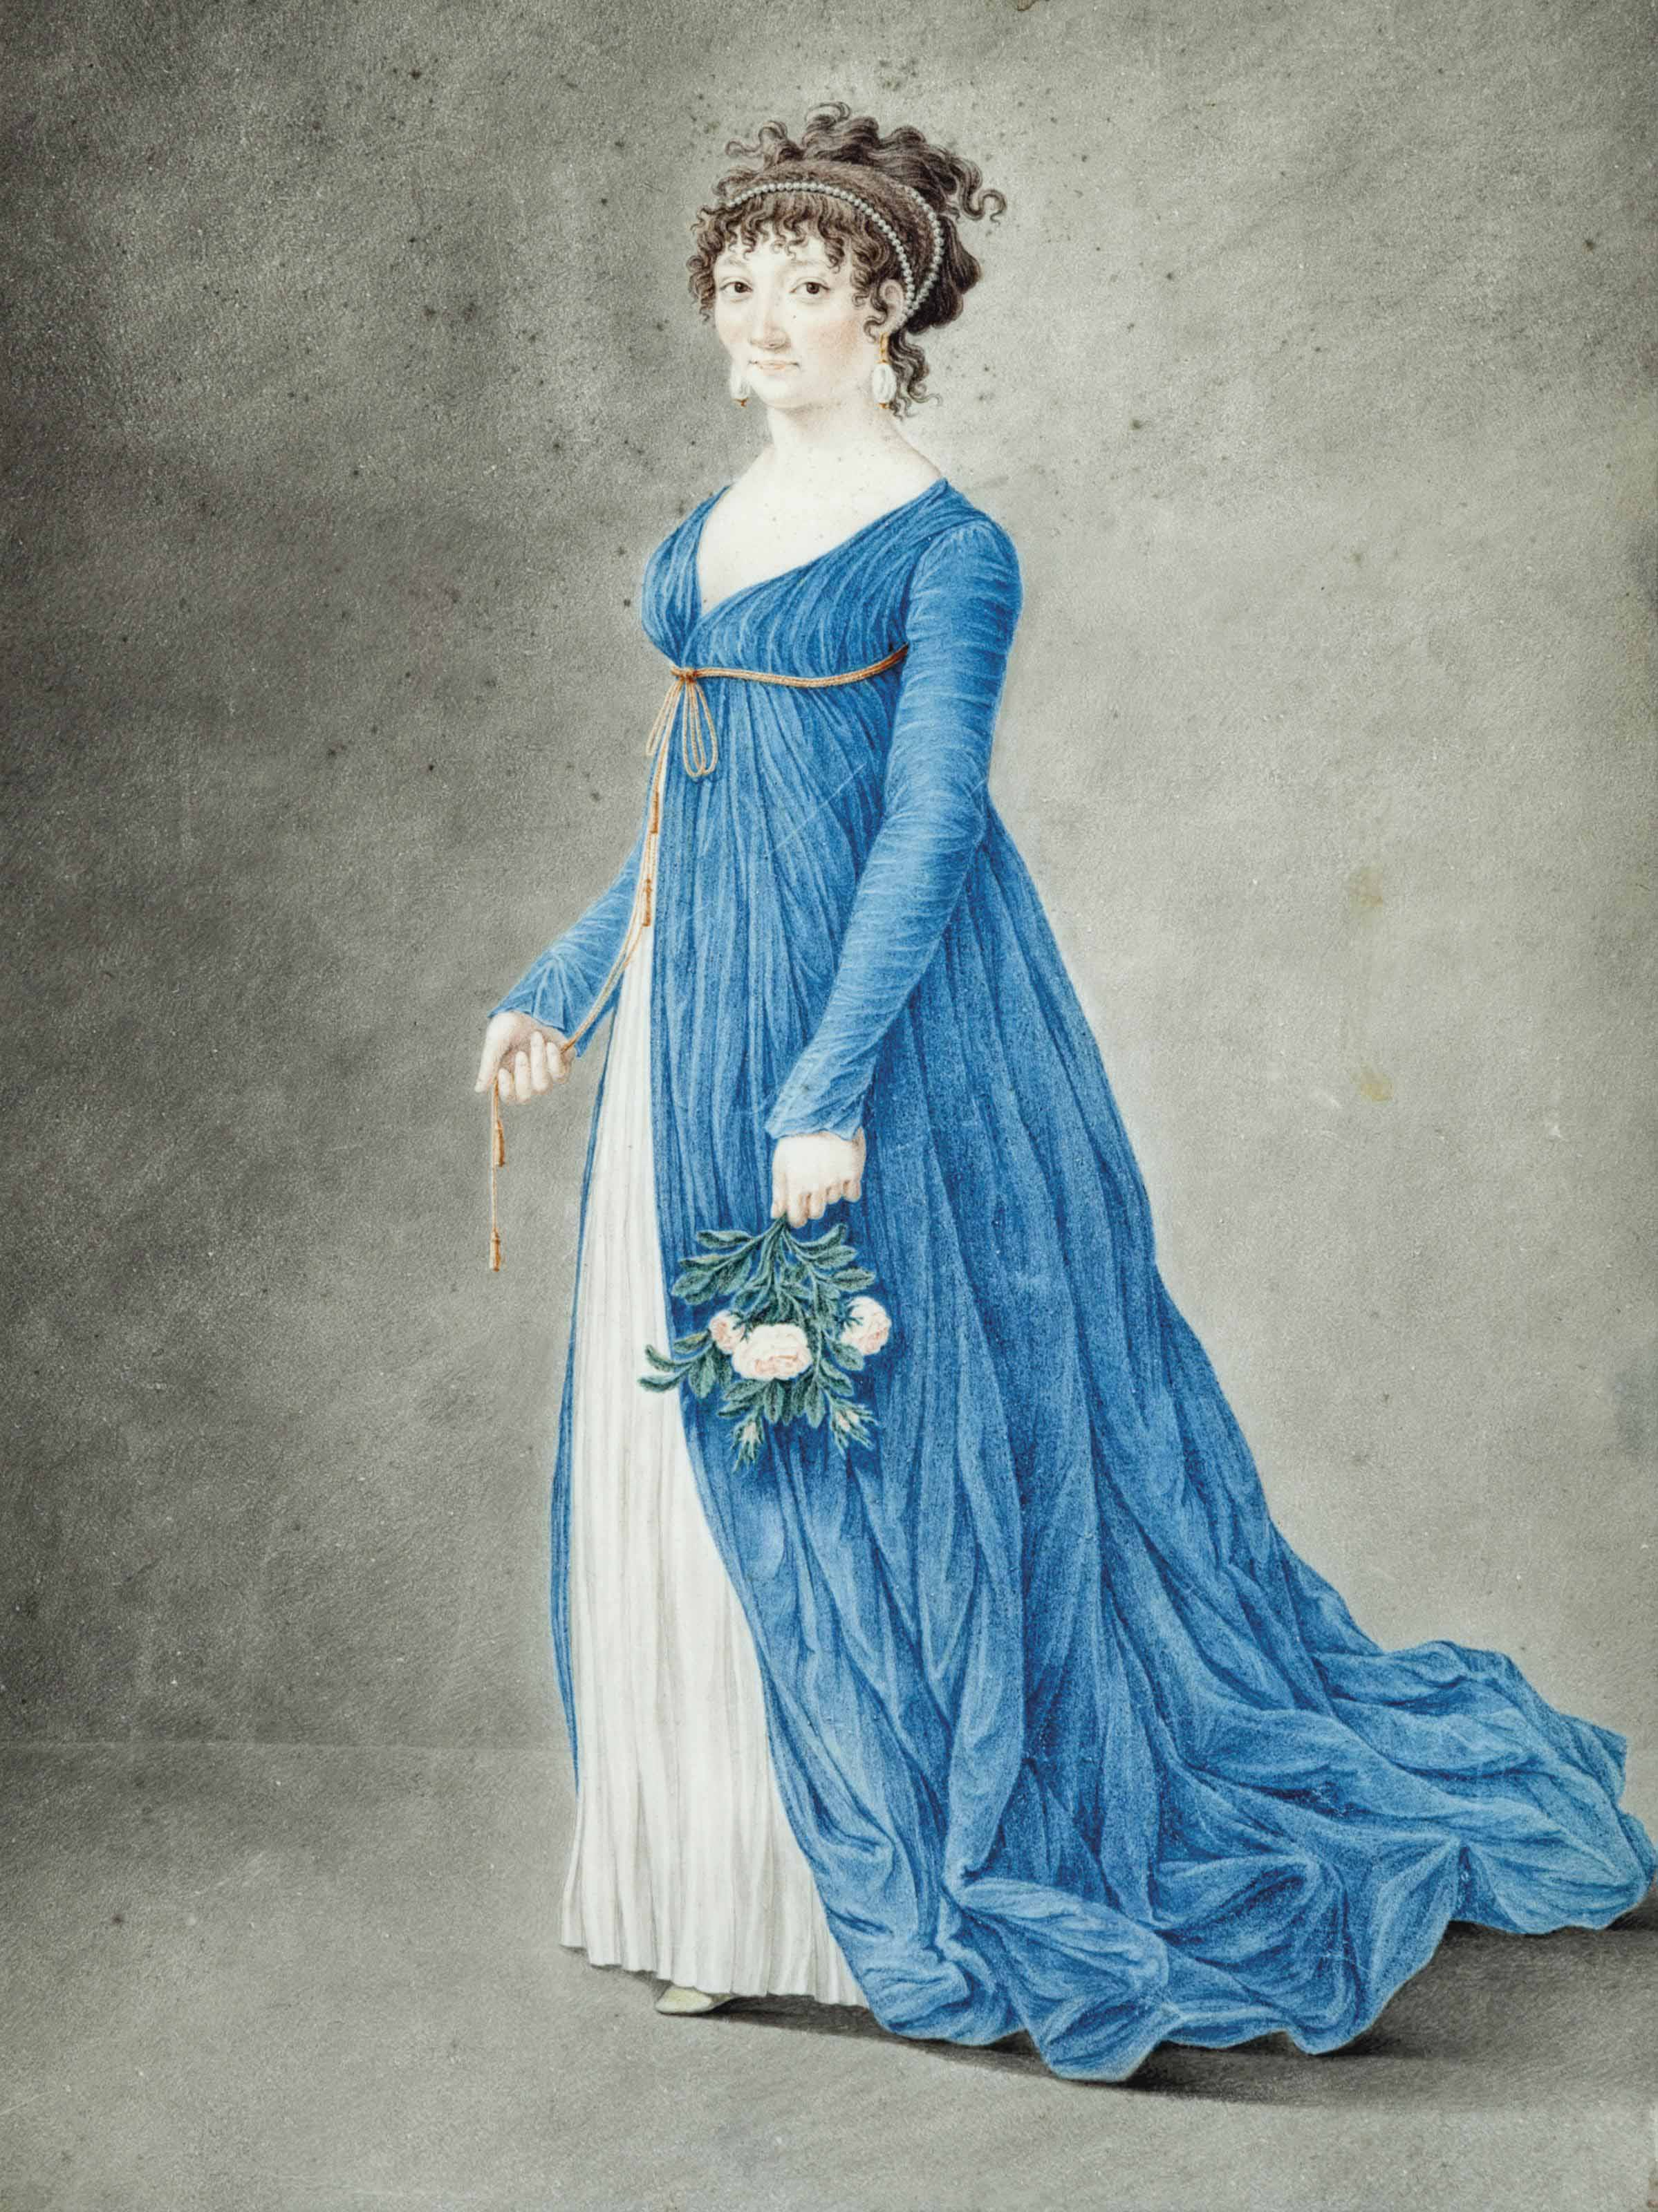 A standing woman in a blue gown, holding roses in her left hand